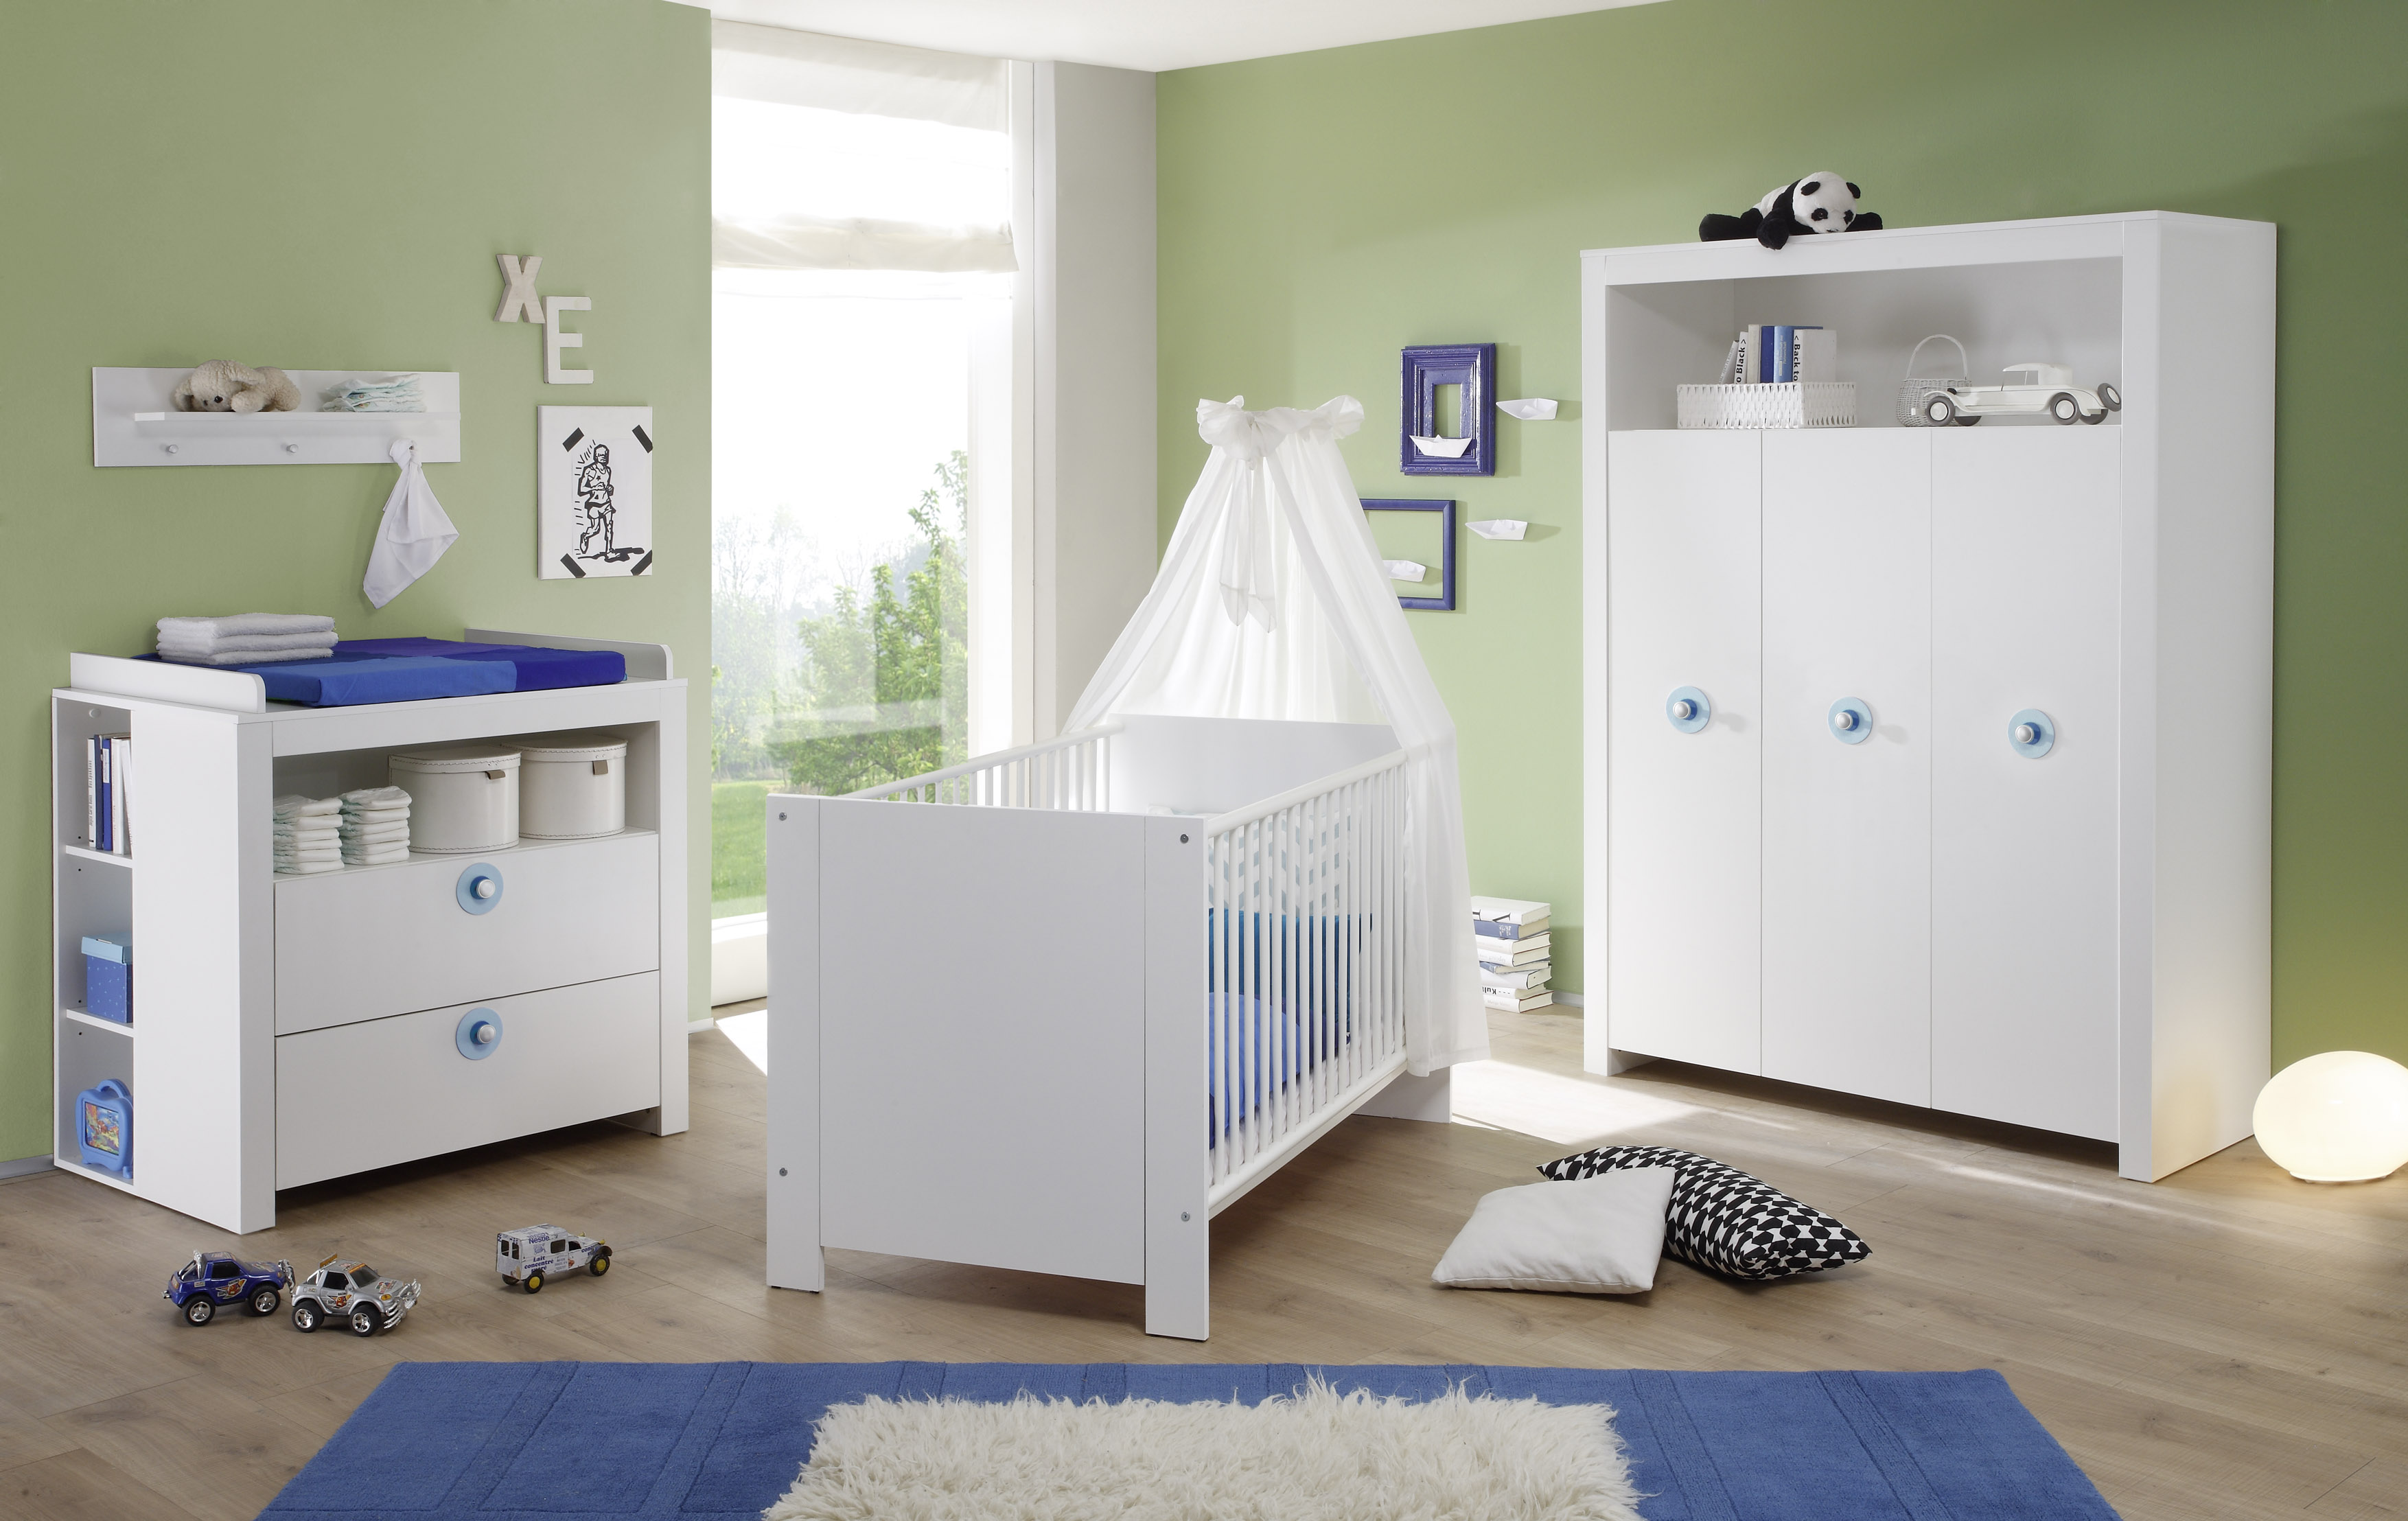 babyzimmerm bel olivia von trendteam hellblau dunkelblau. Black Bedroom Furniture Sets. Home Design Ideas